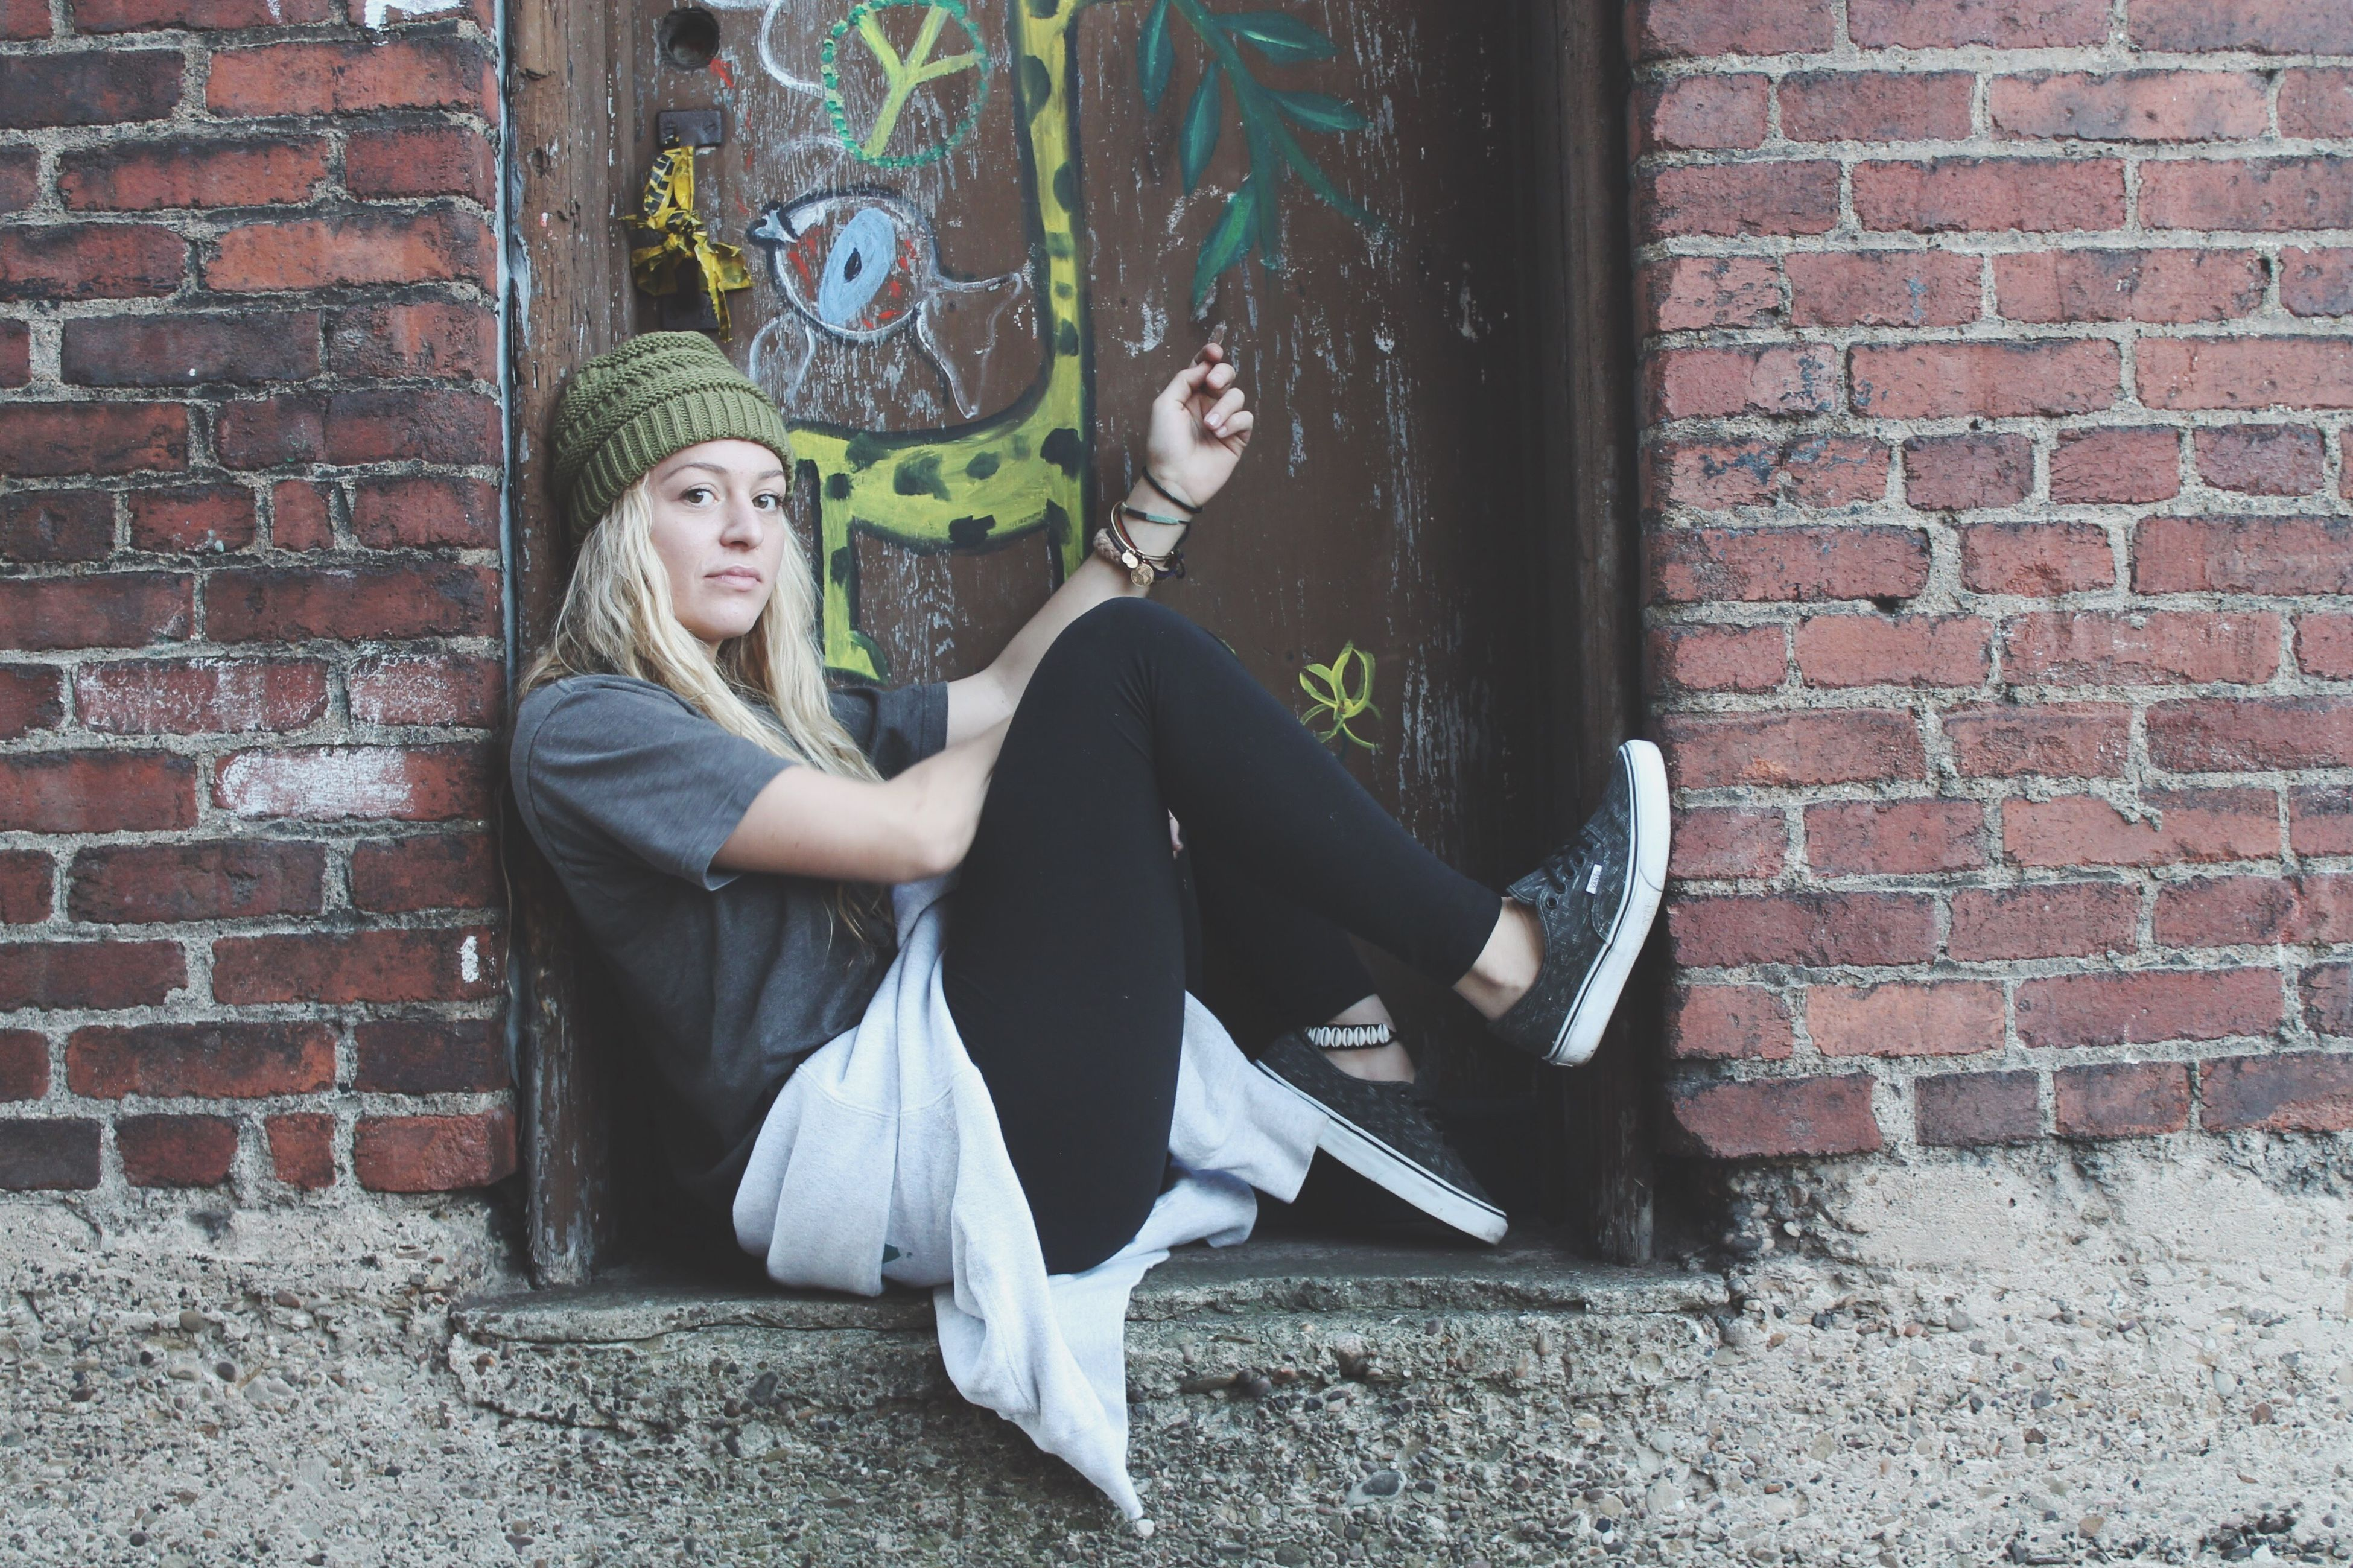 young adult, young women, brick wall, lifestyles, casual clothing, wall - building feature, front view, person, standing, building exterior, leisure activity, built structure, architecture, full length, long hair, looking at camera, portrait